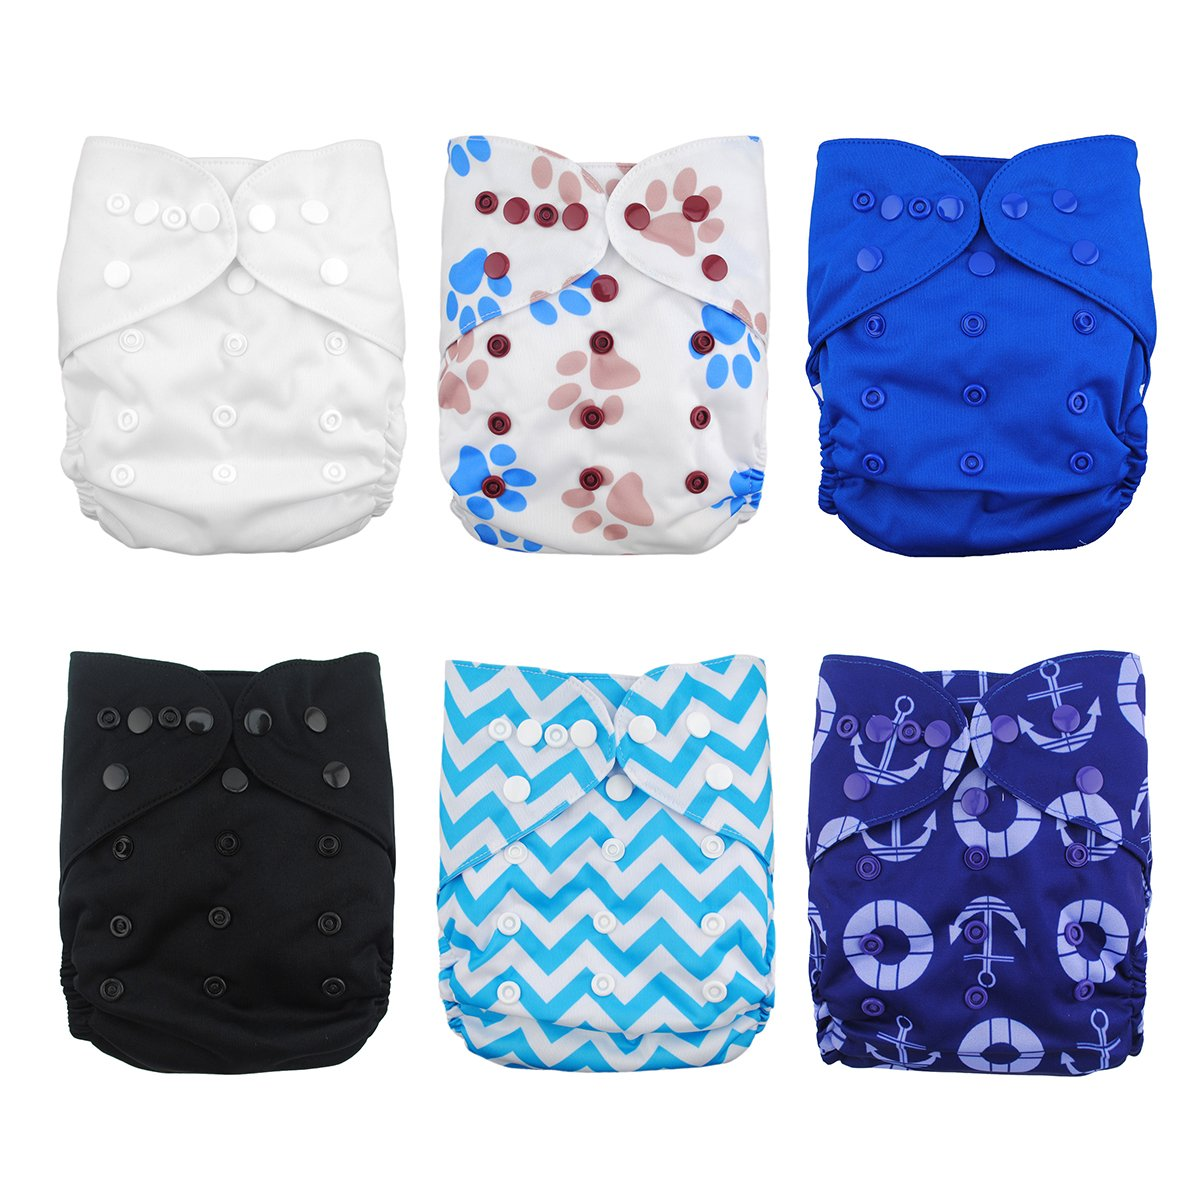 Babygoal 6pcs Baby Cloth Diaper Covers-Adjustable Reusable Washable Cloth Diaper Covers for Fitted Diapers and Prefolds Baby Gift Sets for Boy 6DCF02-CA Huapin